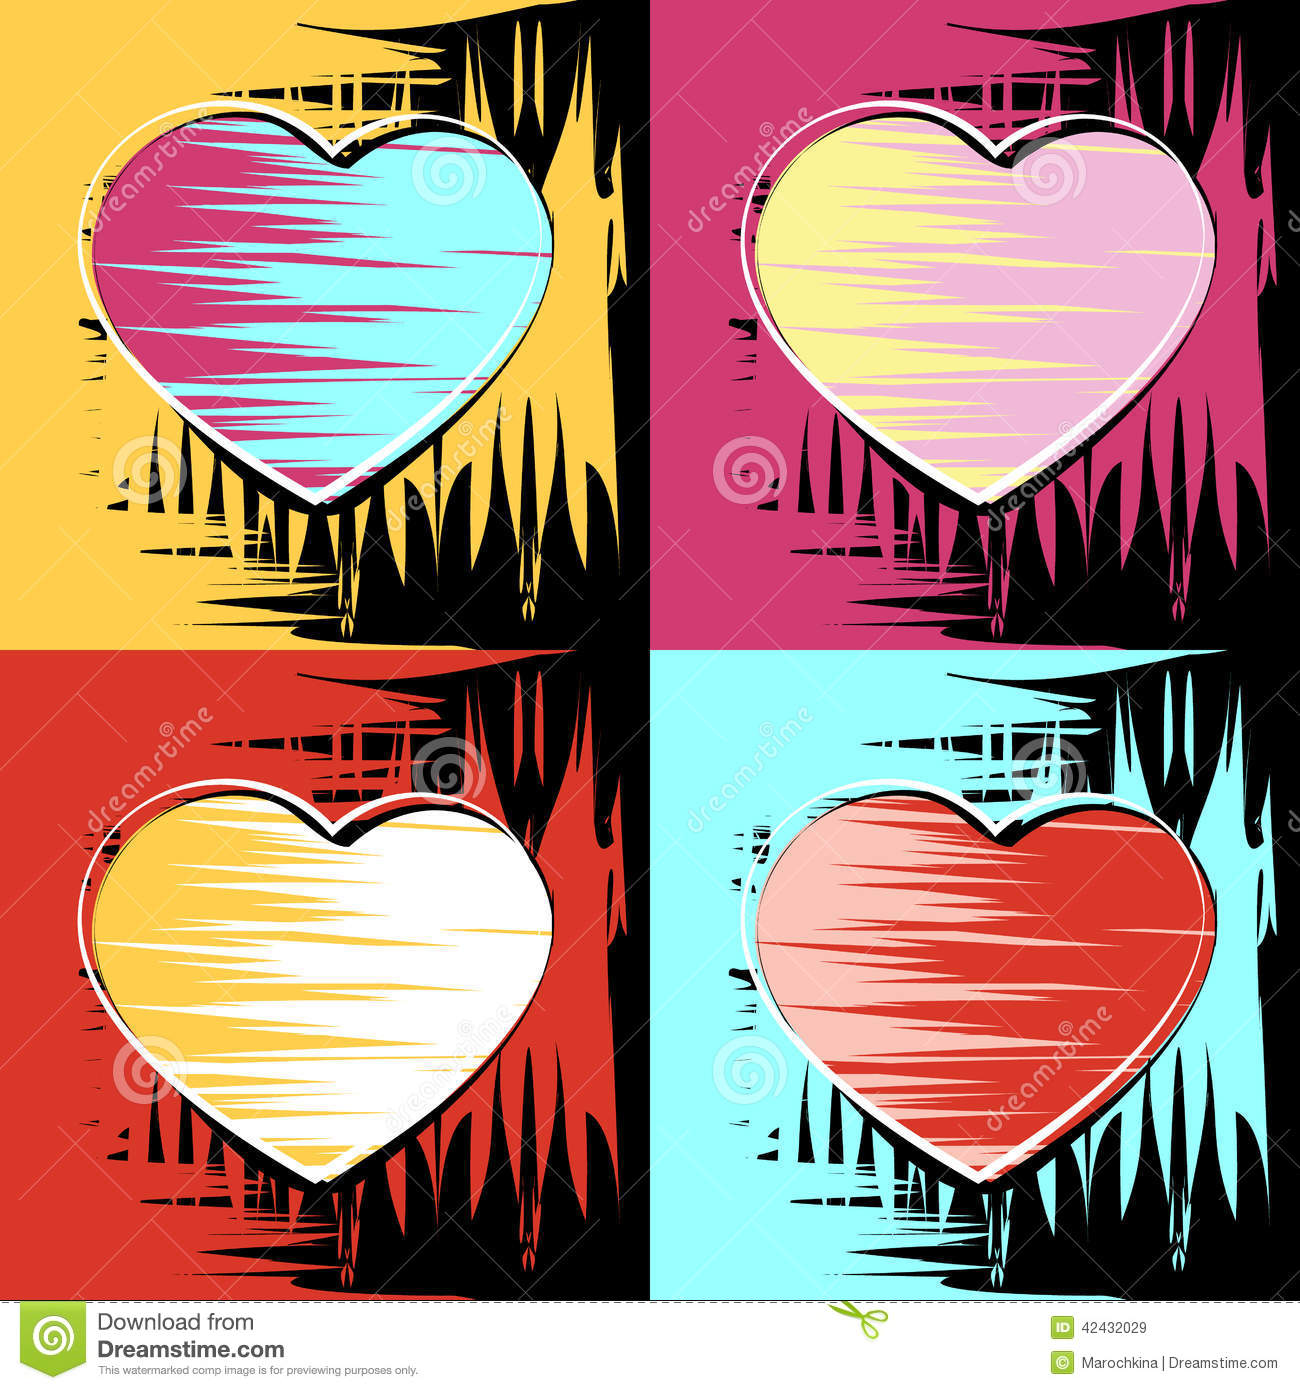 Pinturas De Andy Warhol Painting In The Style Of Andy Warhol Stock Vector Image